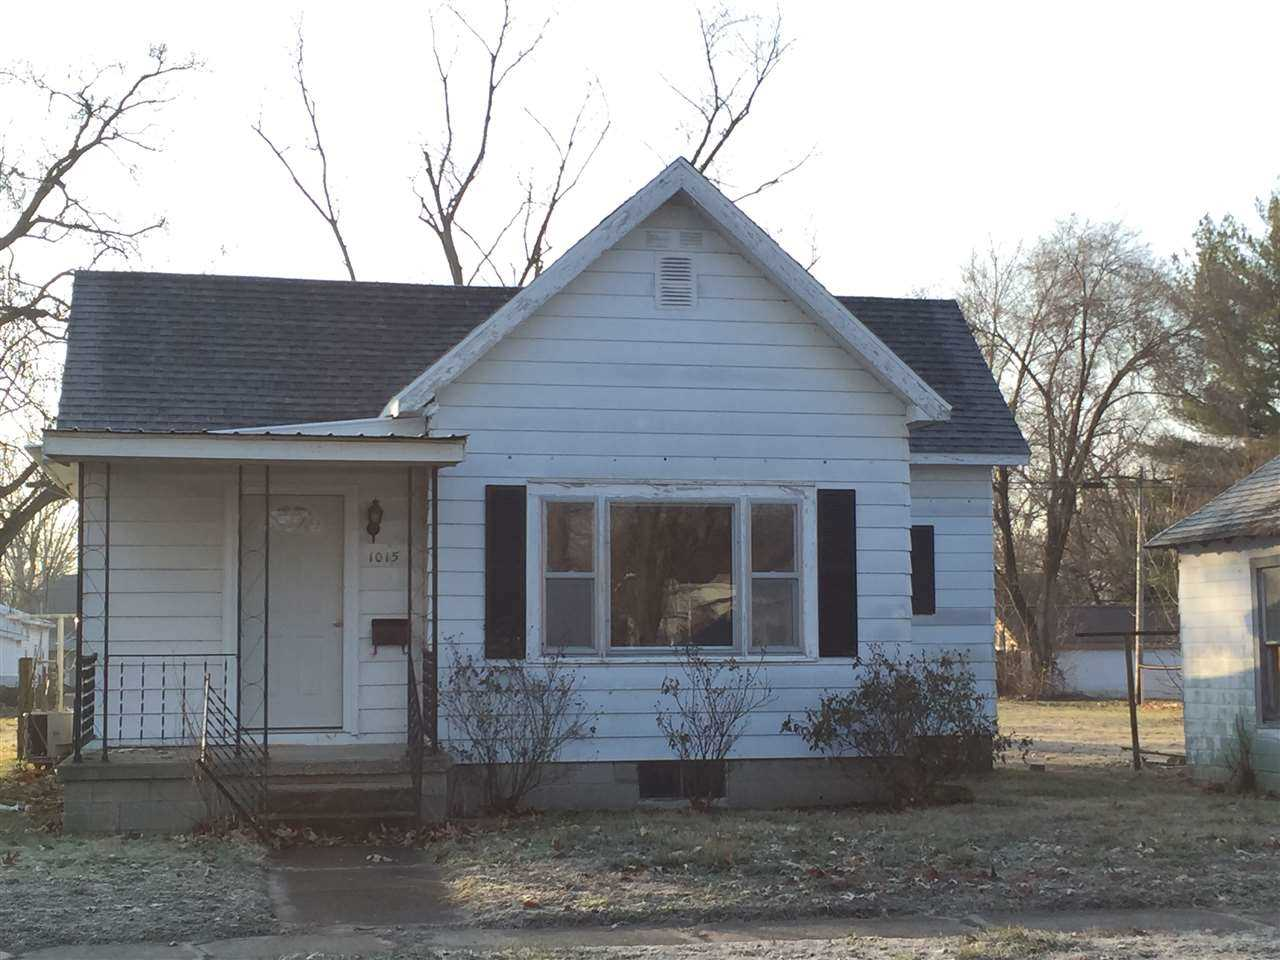 1015 N 13th Street Vincennes, IN 47591 | MLS 201606246 Photo 1